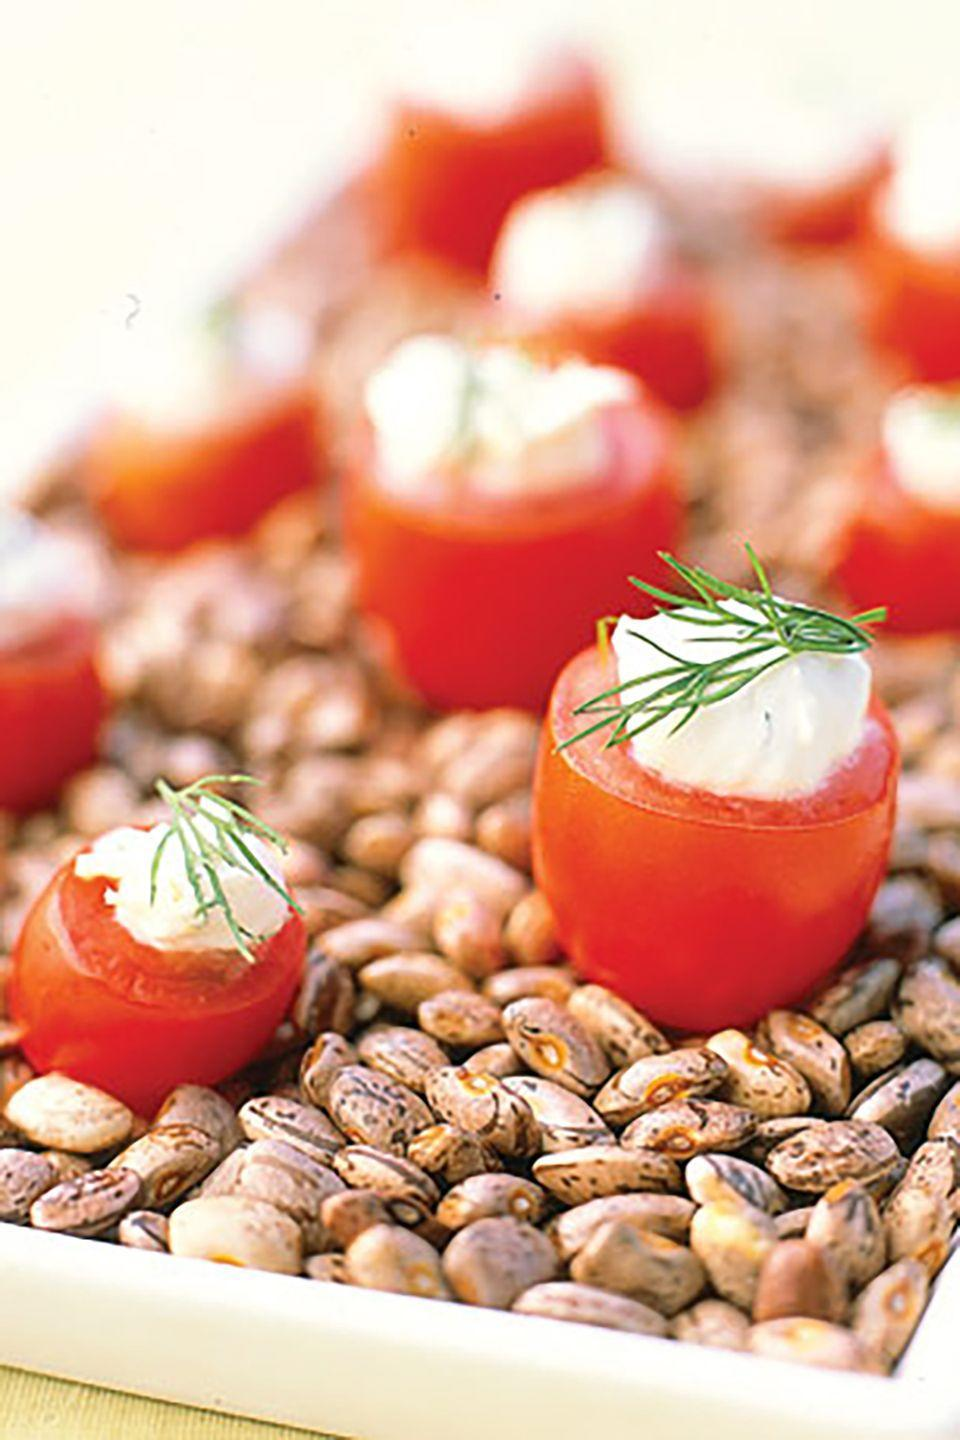 "<p>Stand miniature tomatoes filled with Creamy Lemon-Dill Dip in a tray or shallow serving dish. Shelled, dried runner beans are used here to create an attractive, easy-to-assemble presentation that helps anchor this hors d'oeuvre. Store-bought hummus, baba ghanoush, and tabbouleh can also be enjoyed as a filling. </p><p><strong><a href=""https://www.countryliving.com/food-drinks/recipes/a937/creamy-lemon-dill-dip-3040/?magazine=countryliving"" rel=""nofollow noopener"" target=""_blank"" data-ylk=""slk:Get the recipe"" class=""link rapid-noclick-resp"">Get the recipe</a>.</strong></p><p><a class=""link rapid-noclick-resp"" href=""https://www.amazon.com/Premium-Stainless-Steel-Mixing-Brushed/dp/B01HTYH8YA/?tag=syn-yahoo-20&ascsubtag=%5Bartid%7C10063.g.35089489%5Bsrc%7Cyahoo-us"" rel=""nofollow noopener"" target=""_blank"" data-ylk=""slk:SHOP MIXING BOWLS"">SHOP MIXING BOWLS</a></p>"